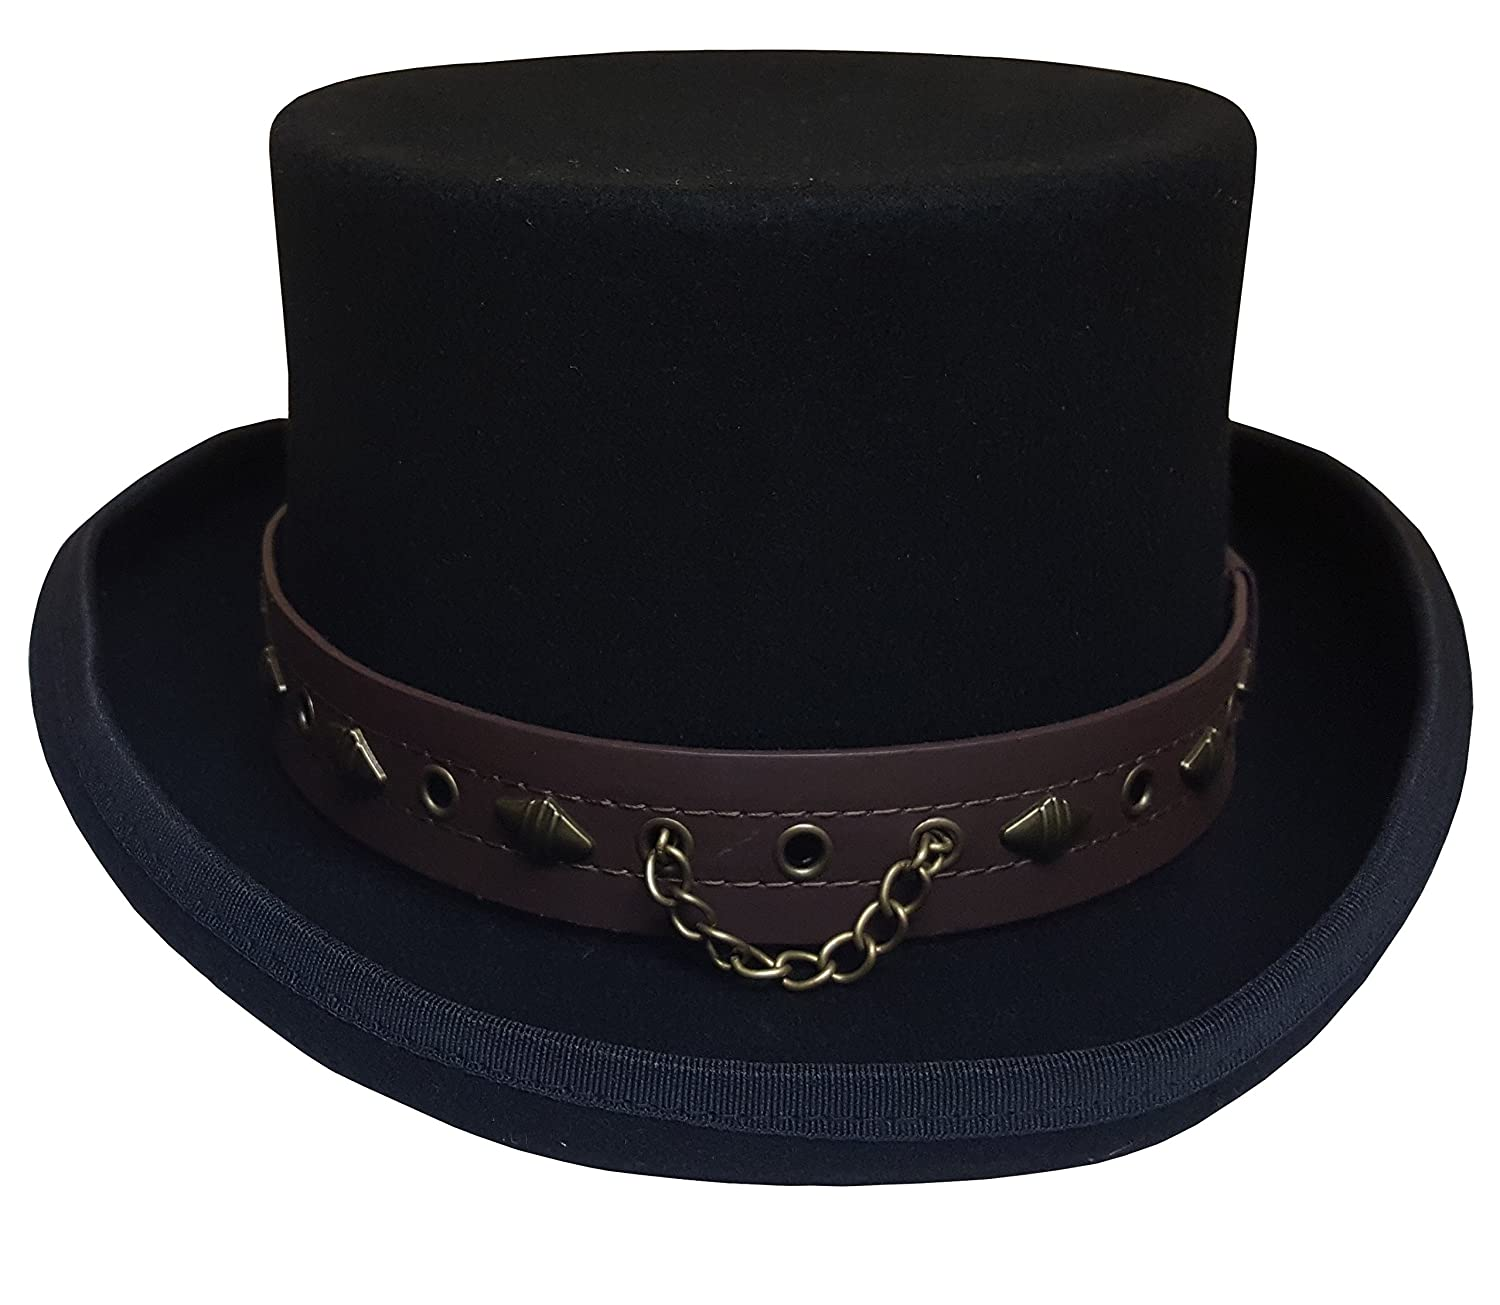 Deluxe Adult Costumes - Wool Victorian Western Jacob Frye Syndicate costume top hat with leather band and chain.